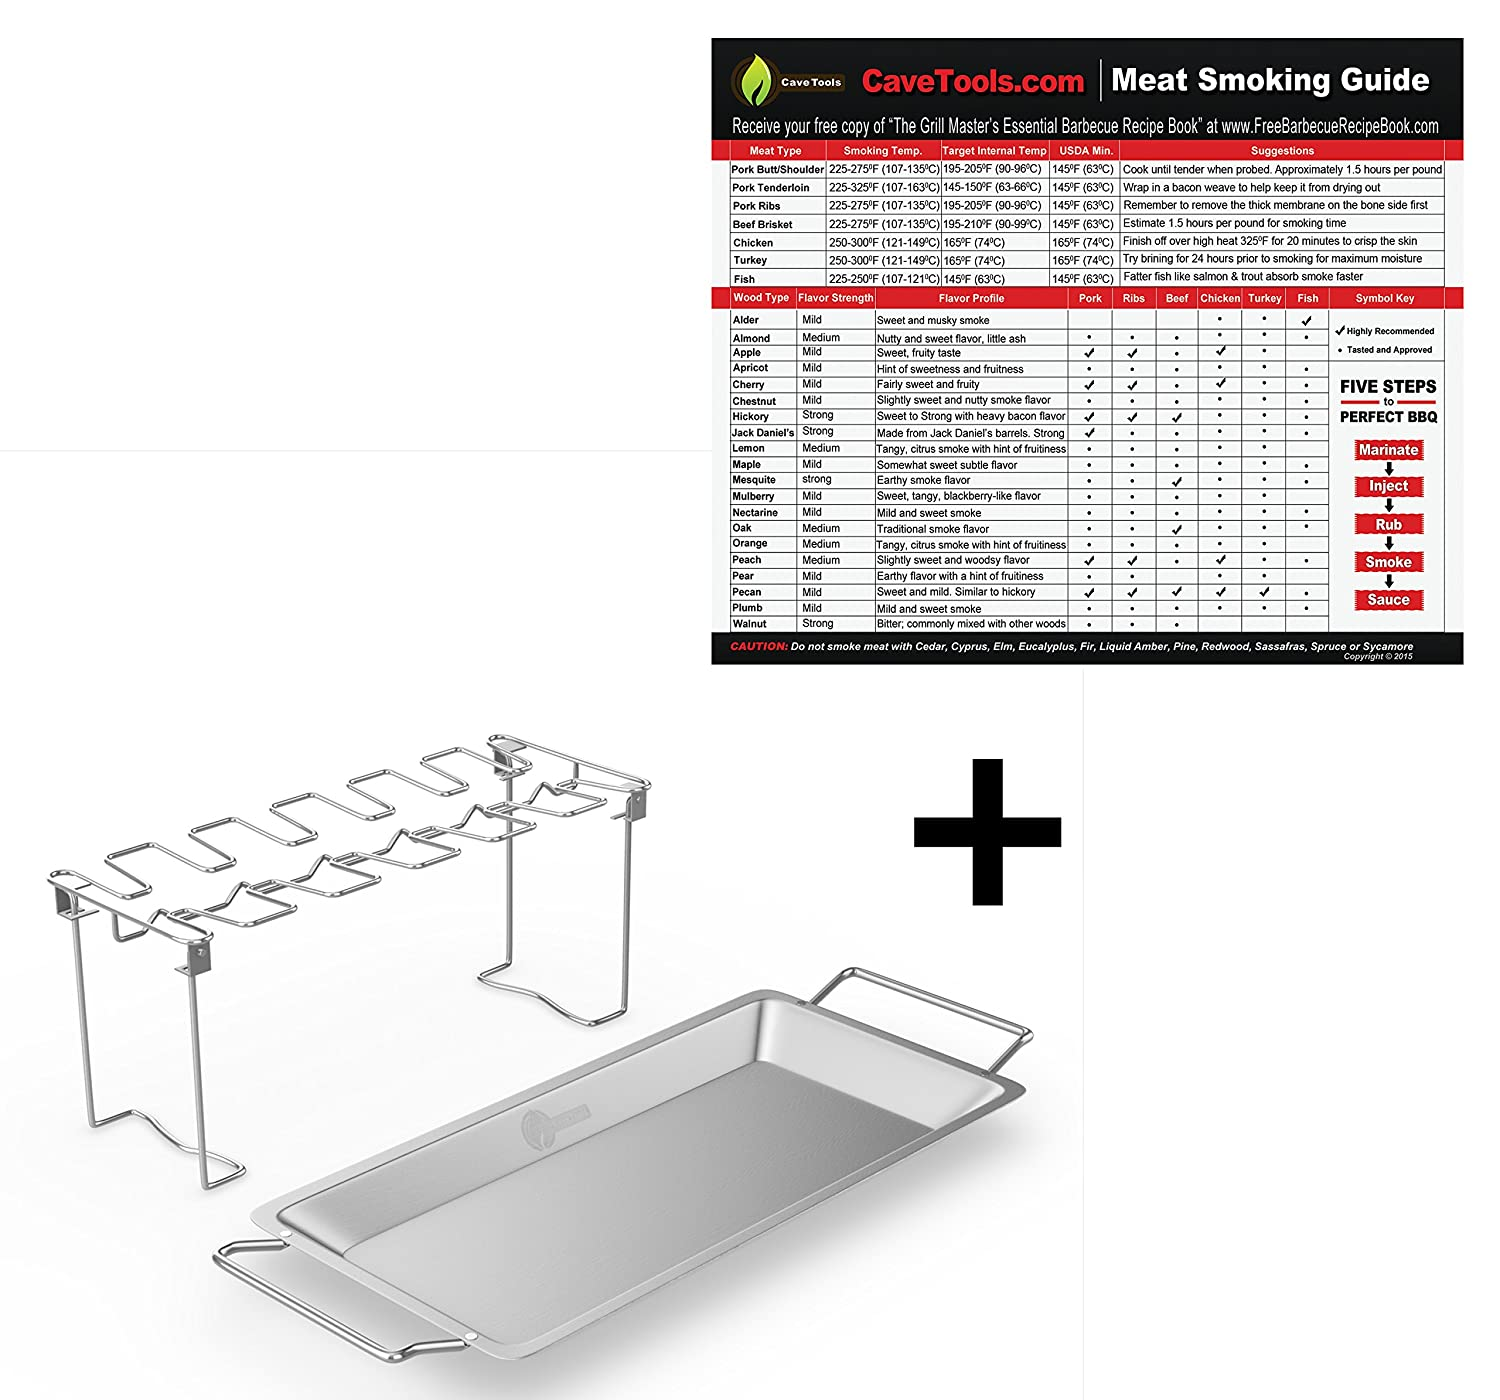 Meat Smoking Magnet (lg)+ Chicken Wing & Leg Rack For Grill Smoker or Oven - Stainless Steel Vertical Roaster & Drip Pan For Cooking Vegetables In BBQ Juices - Dishwasher Safe Barbecue Accessories